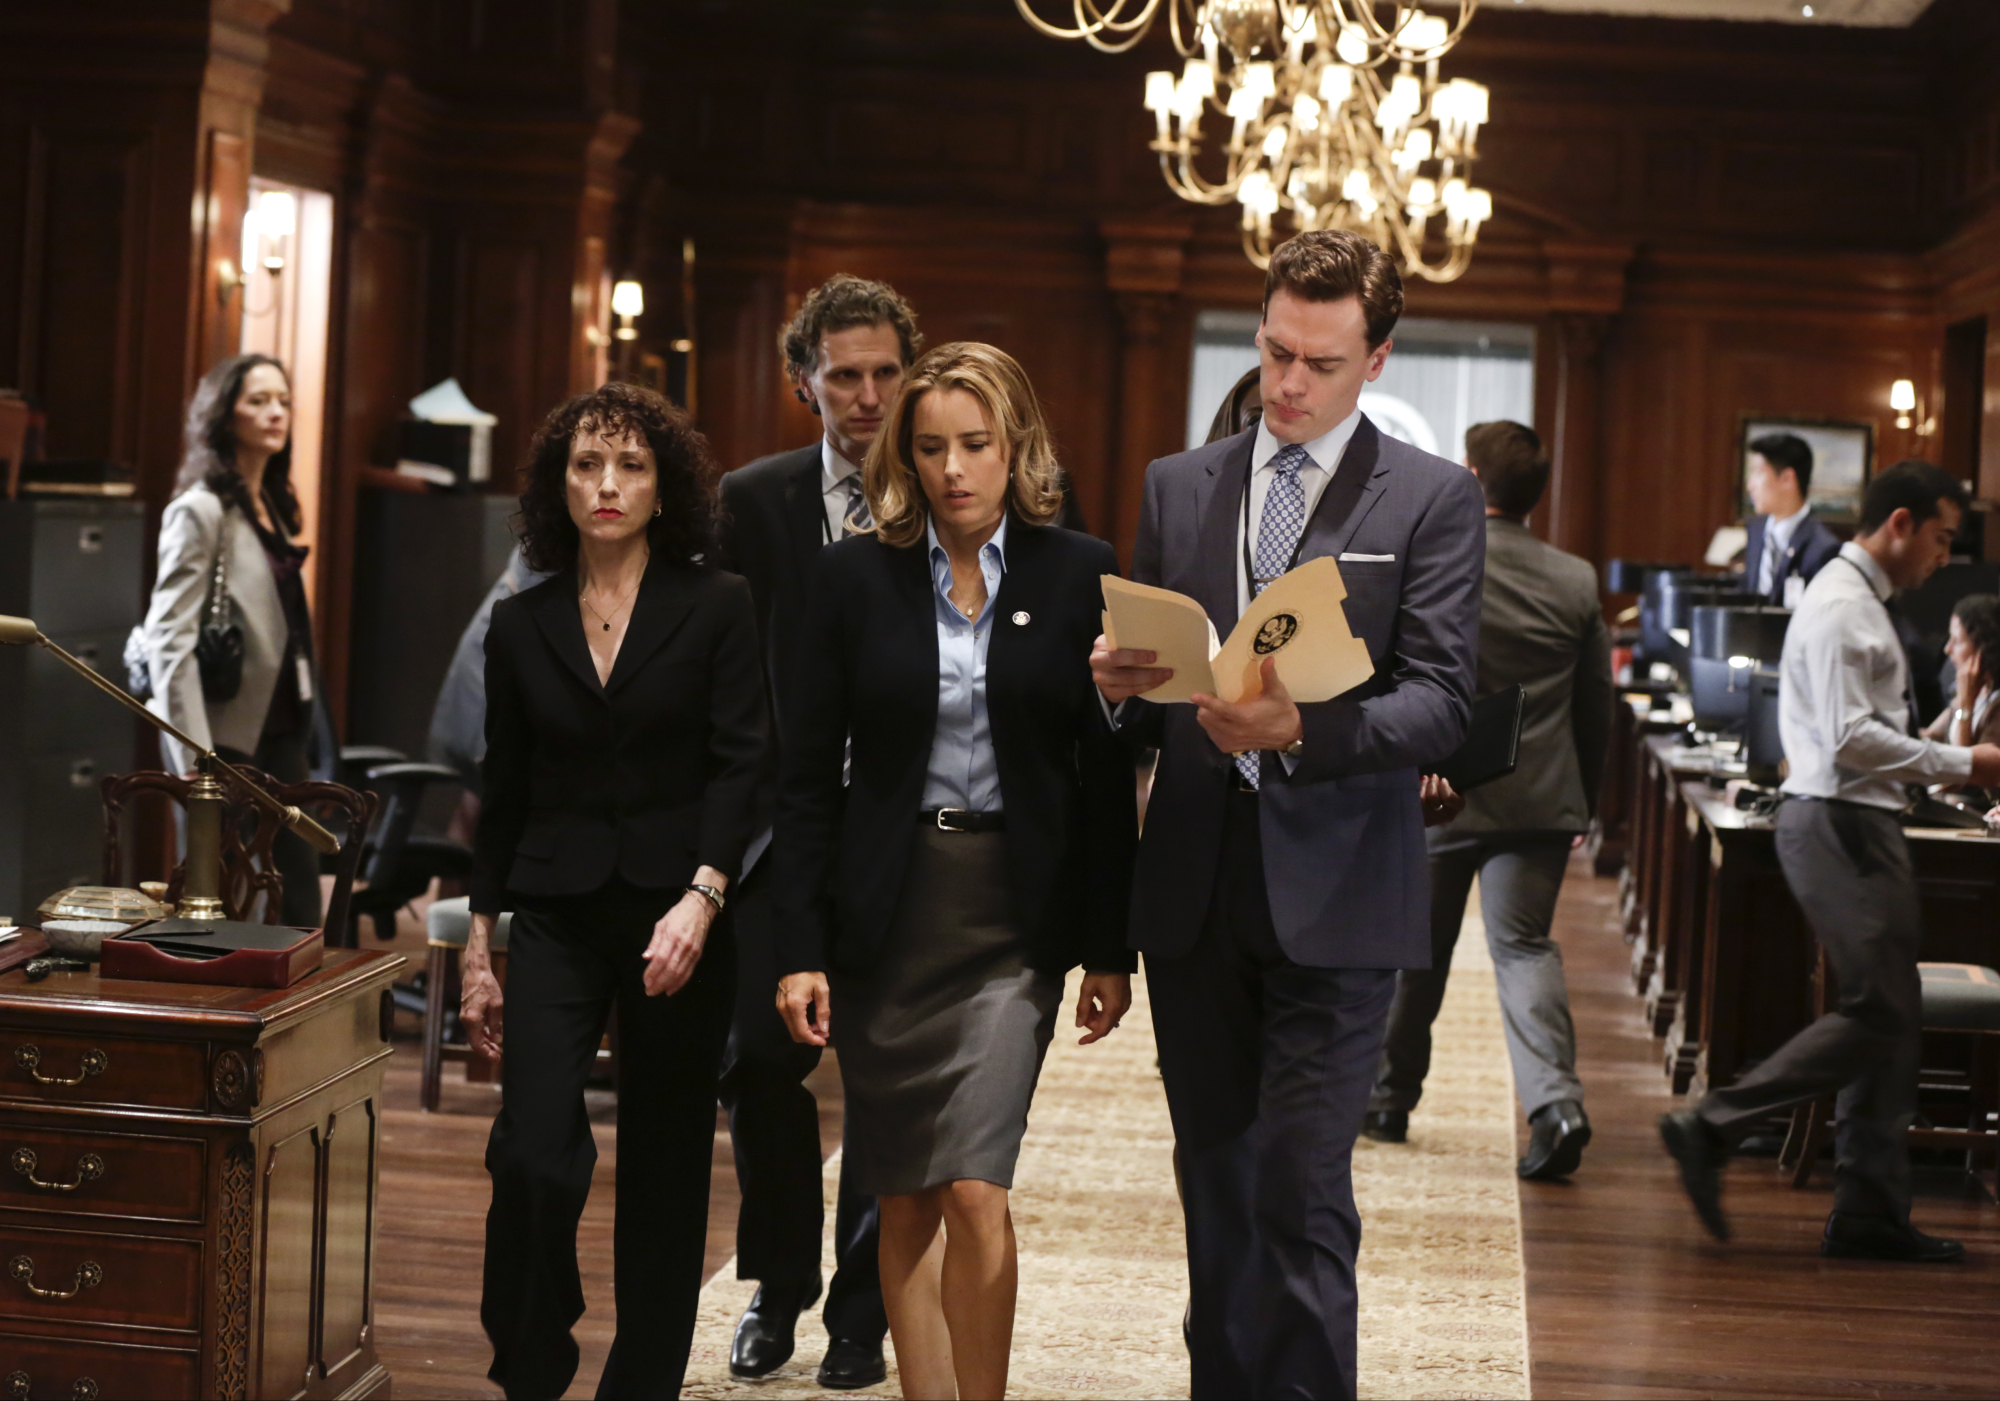 Madam Secretary Episode 3 -